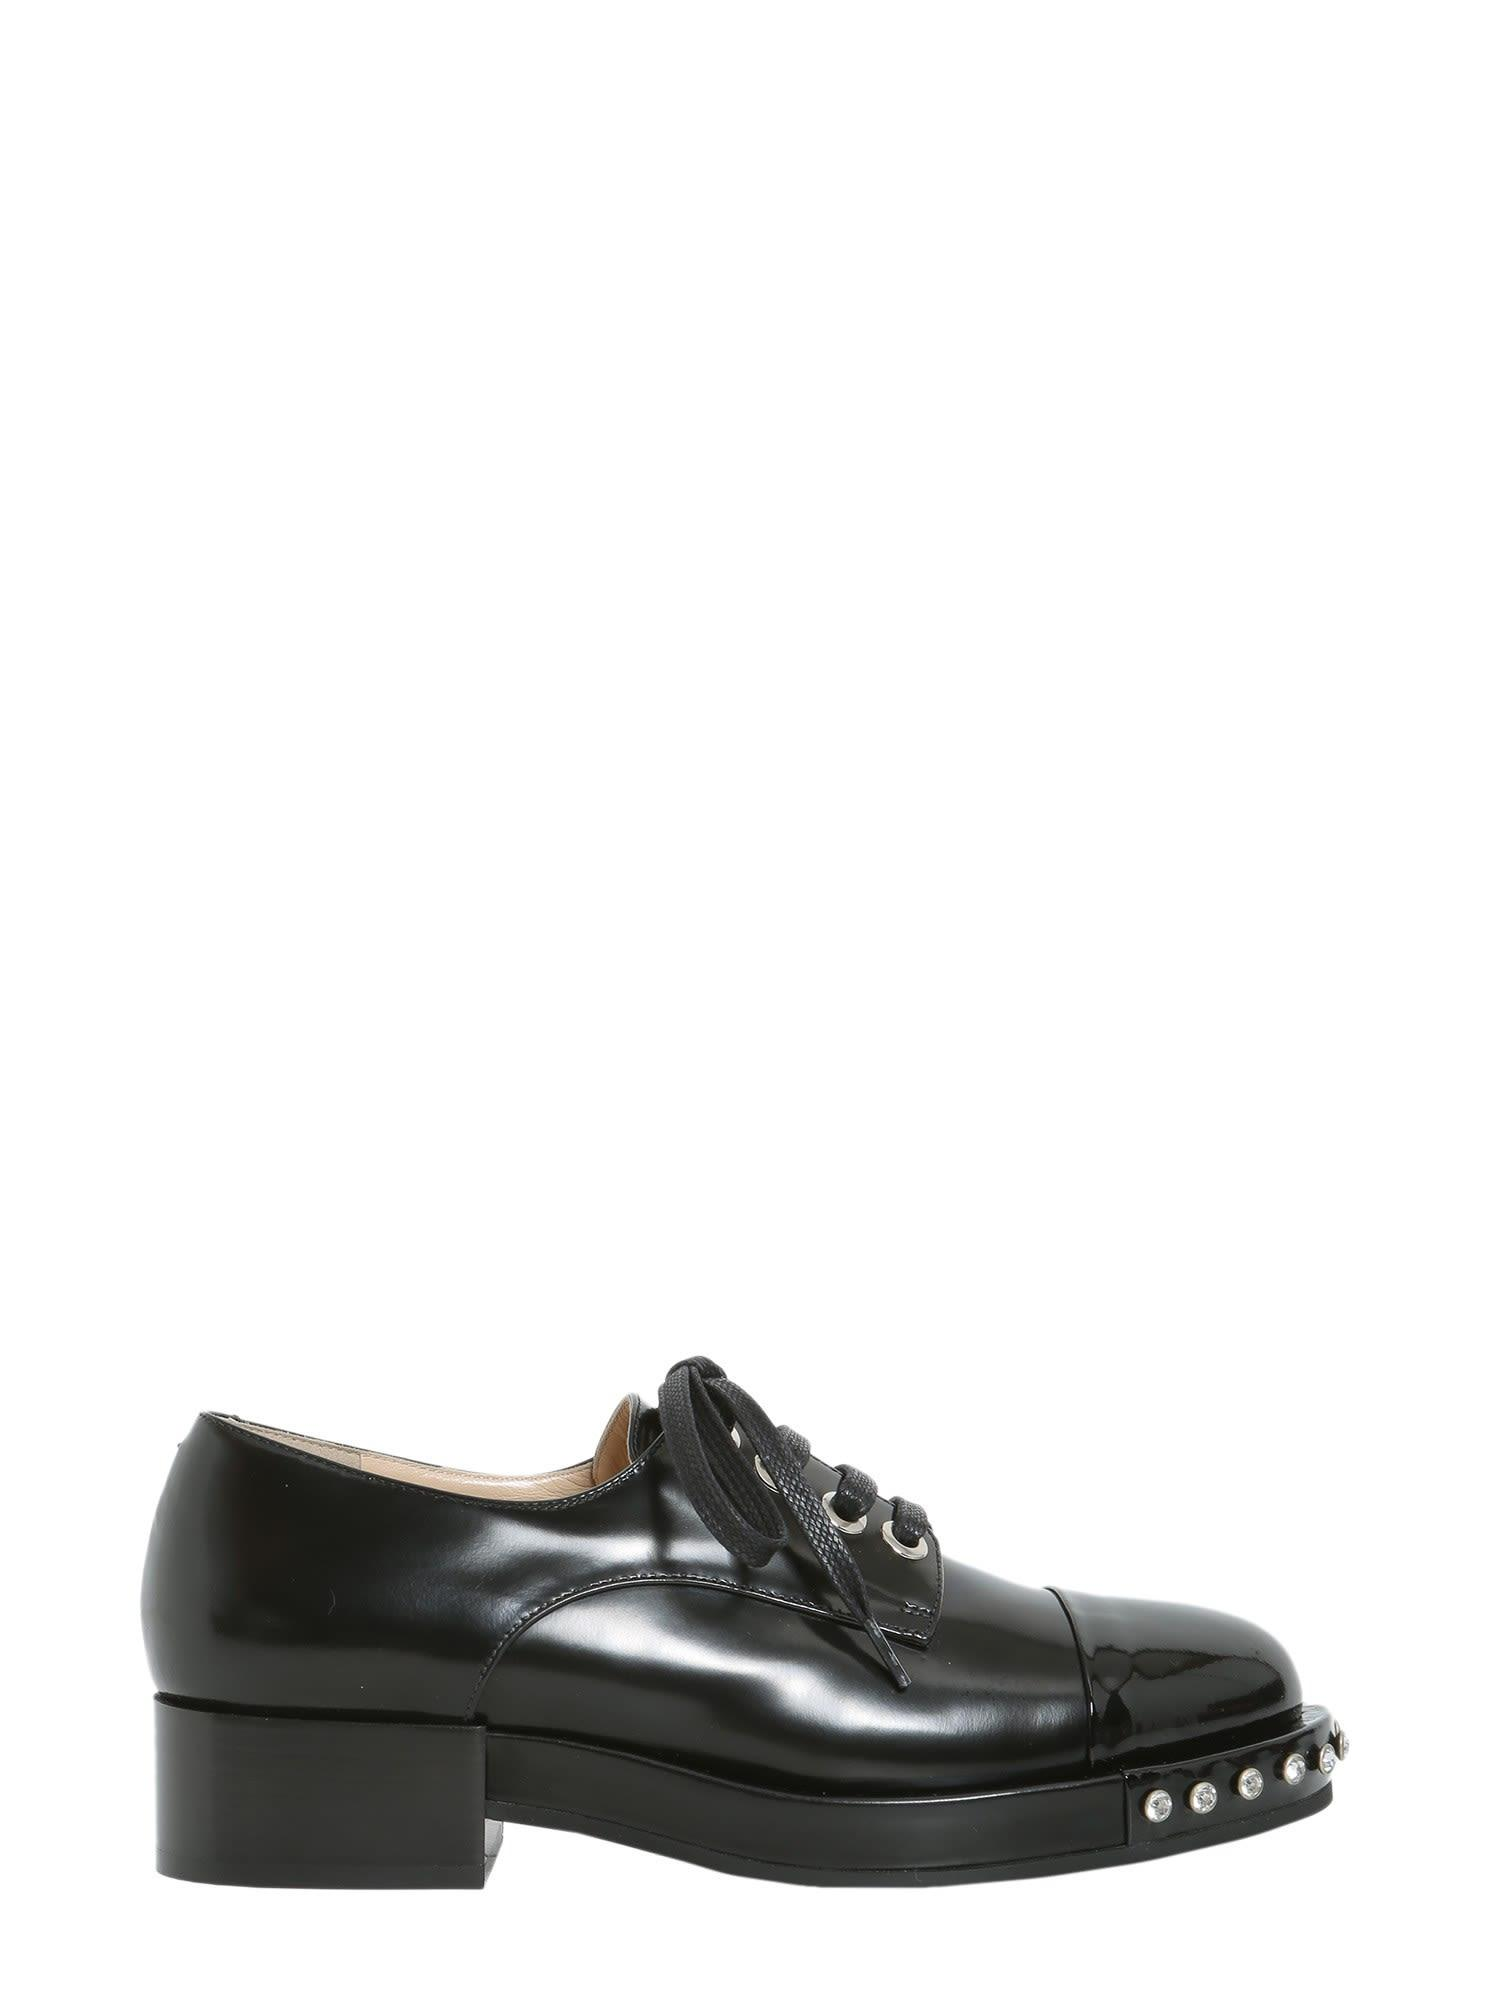 N°21 Leather Lace-Up Shoes In Nero